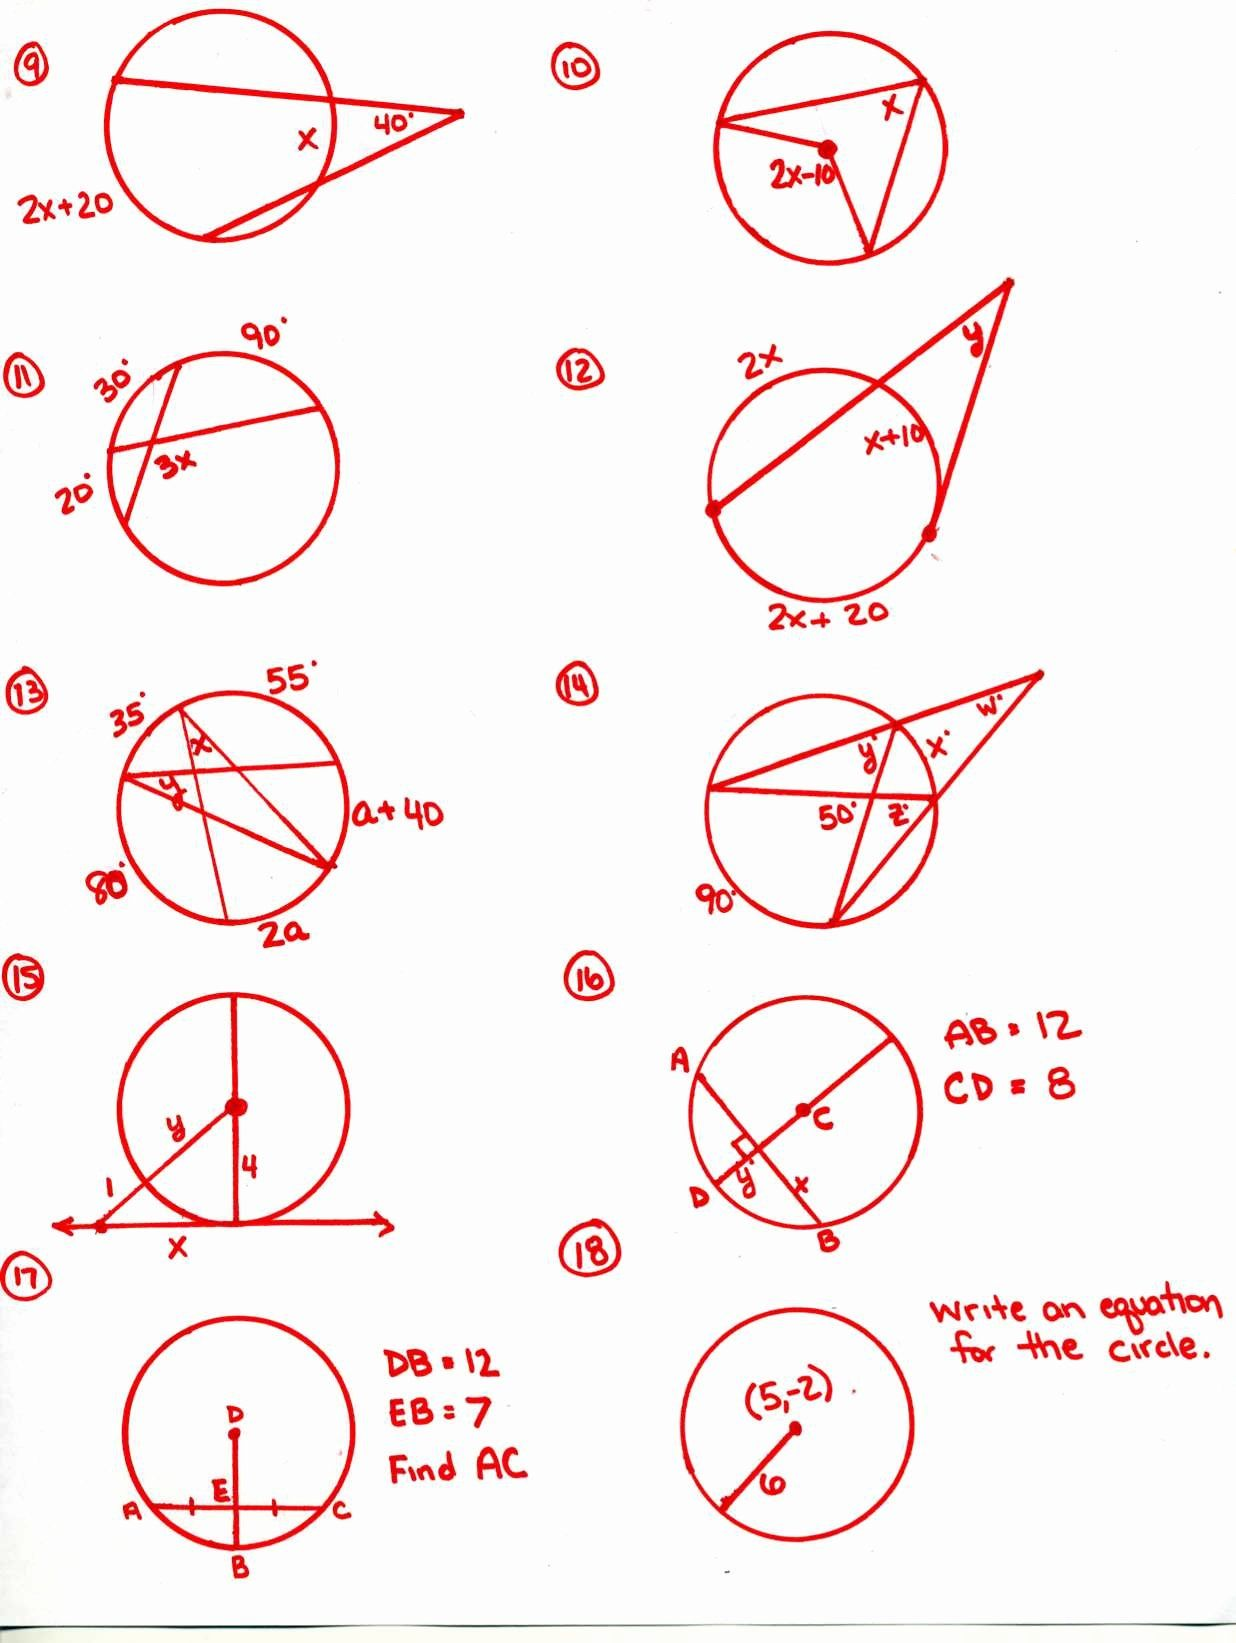 Angles In A Circle Worksheet Lovely Circle theorems Match Up by Debbs  Bridgman – Chessmuseum Template Library   Geometry worksheets [ 1643 x 1236 Pixel ]